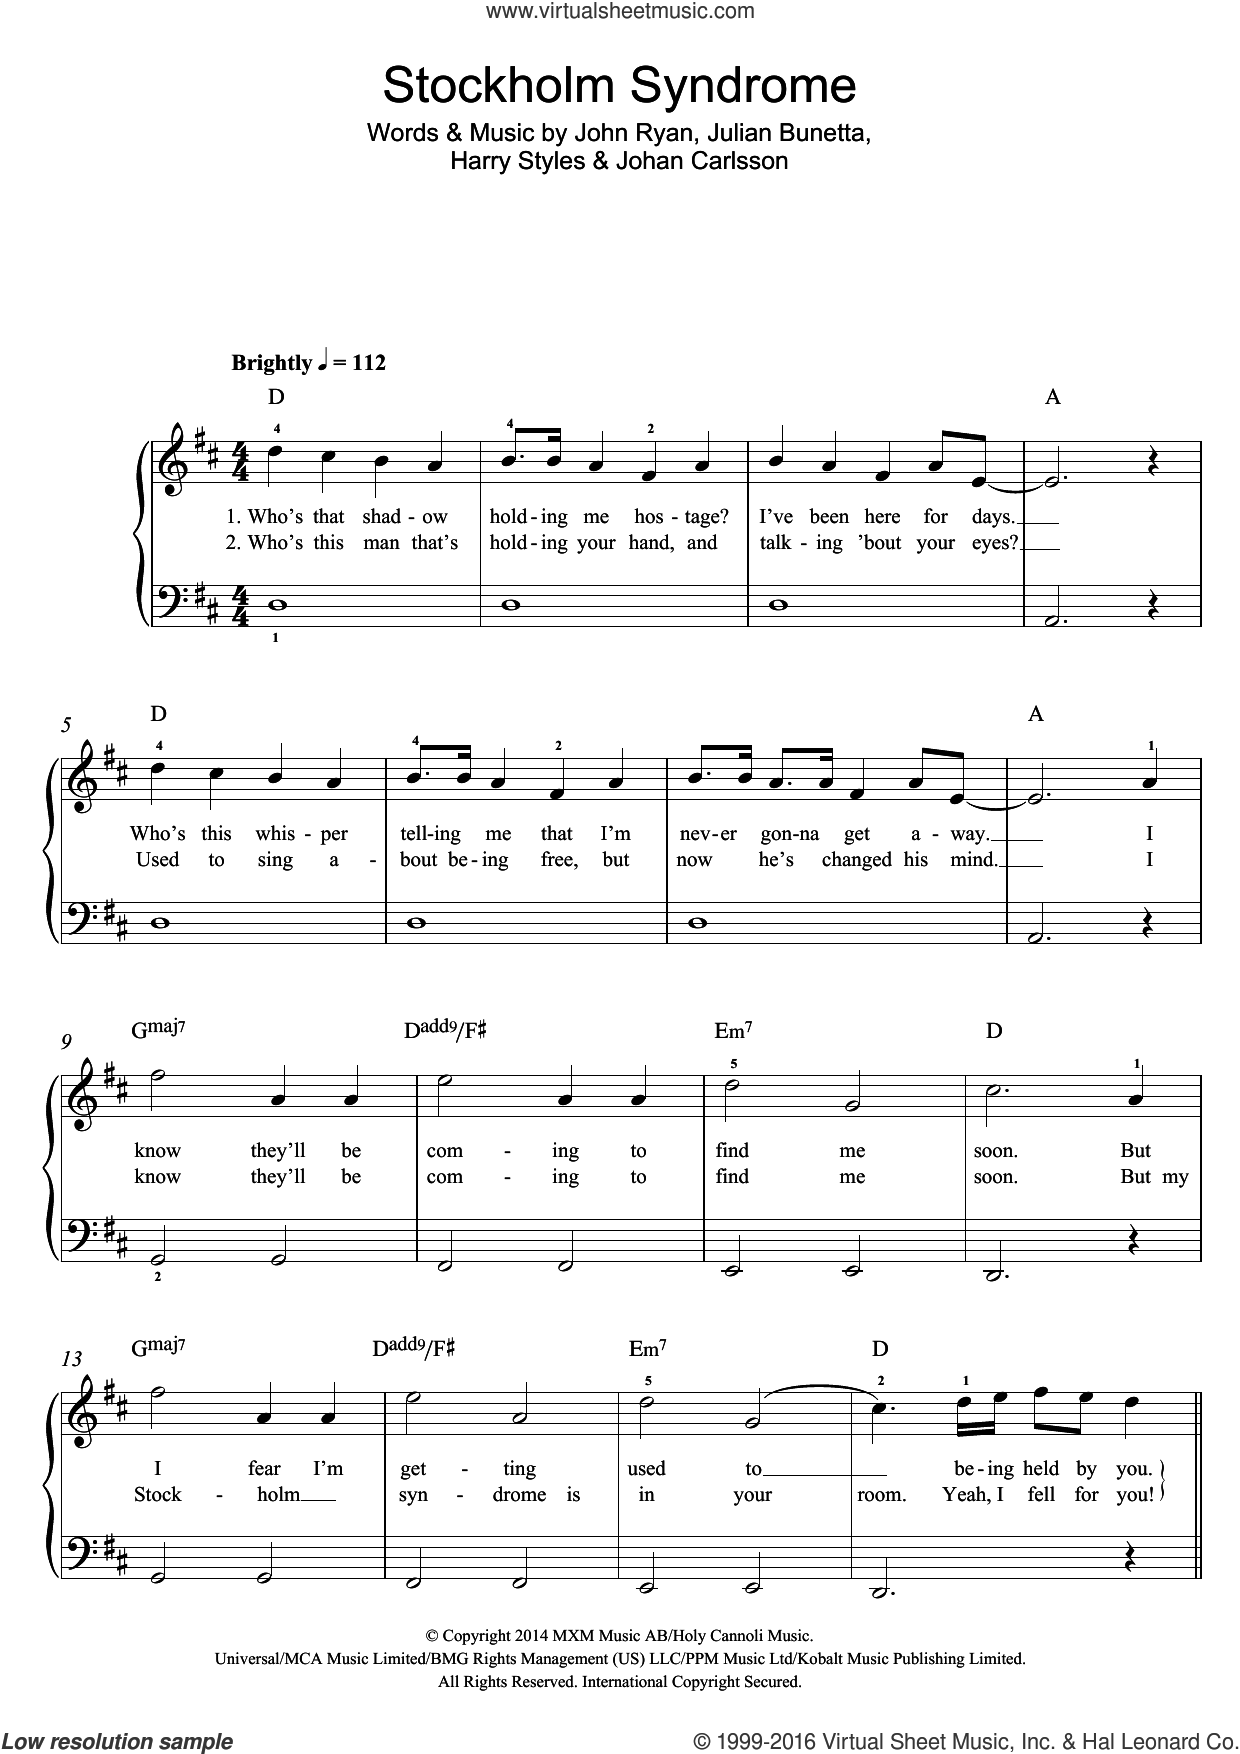 Stockholm Syndrome sheet music for voice, piano or guitar by Harry Styles, One Direction, Johan Carlsson, John Ryan and Julian Bunetta. Score Image Preview.